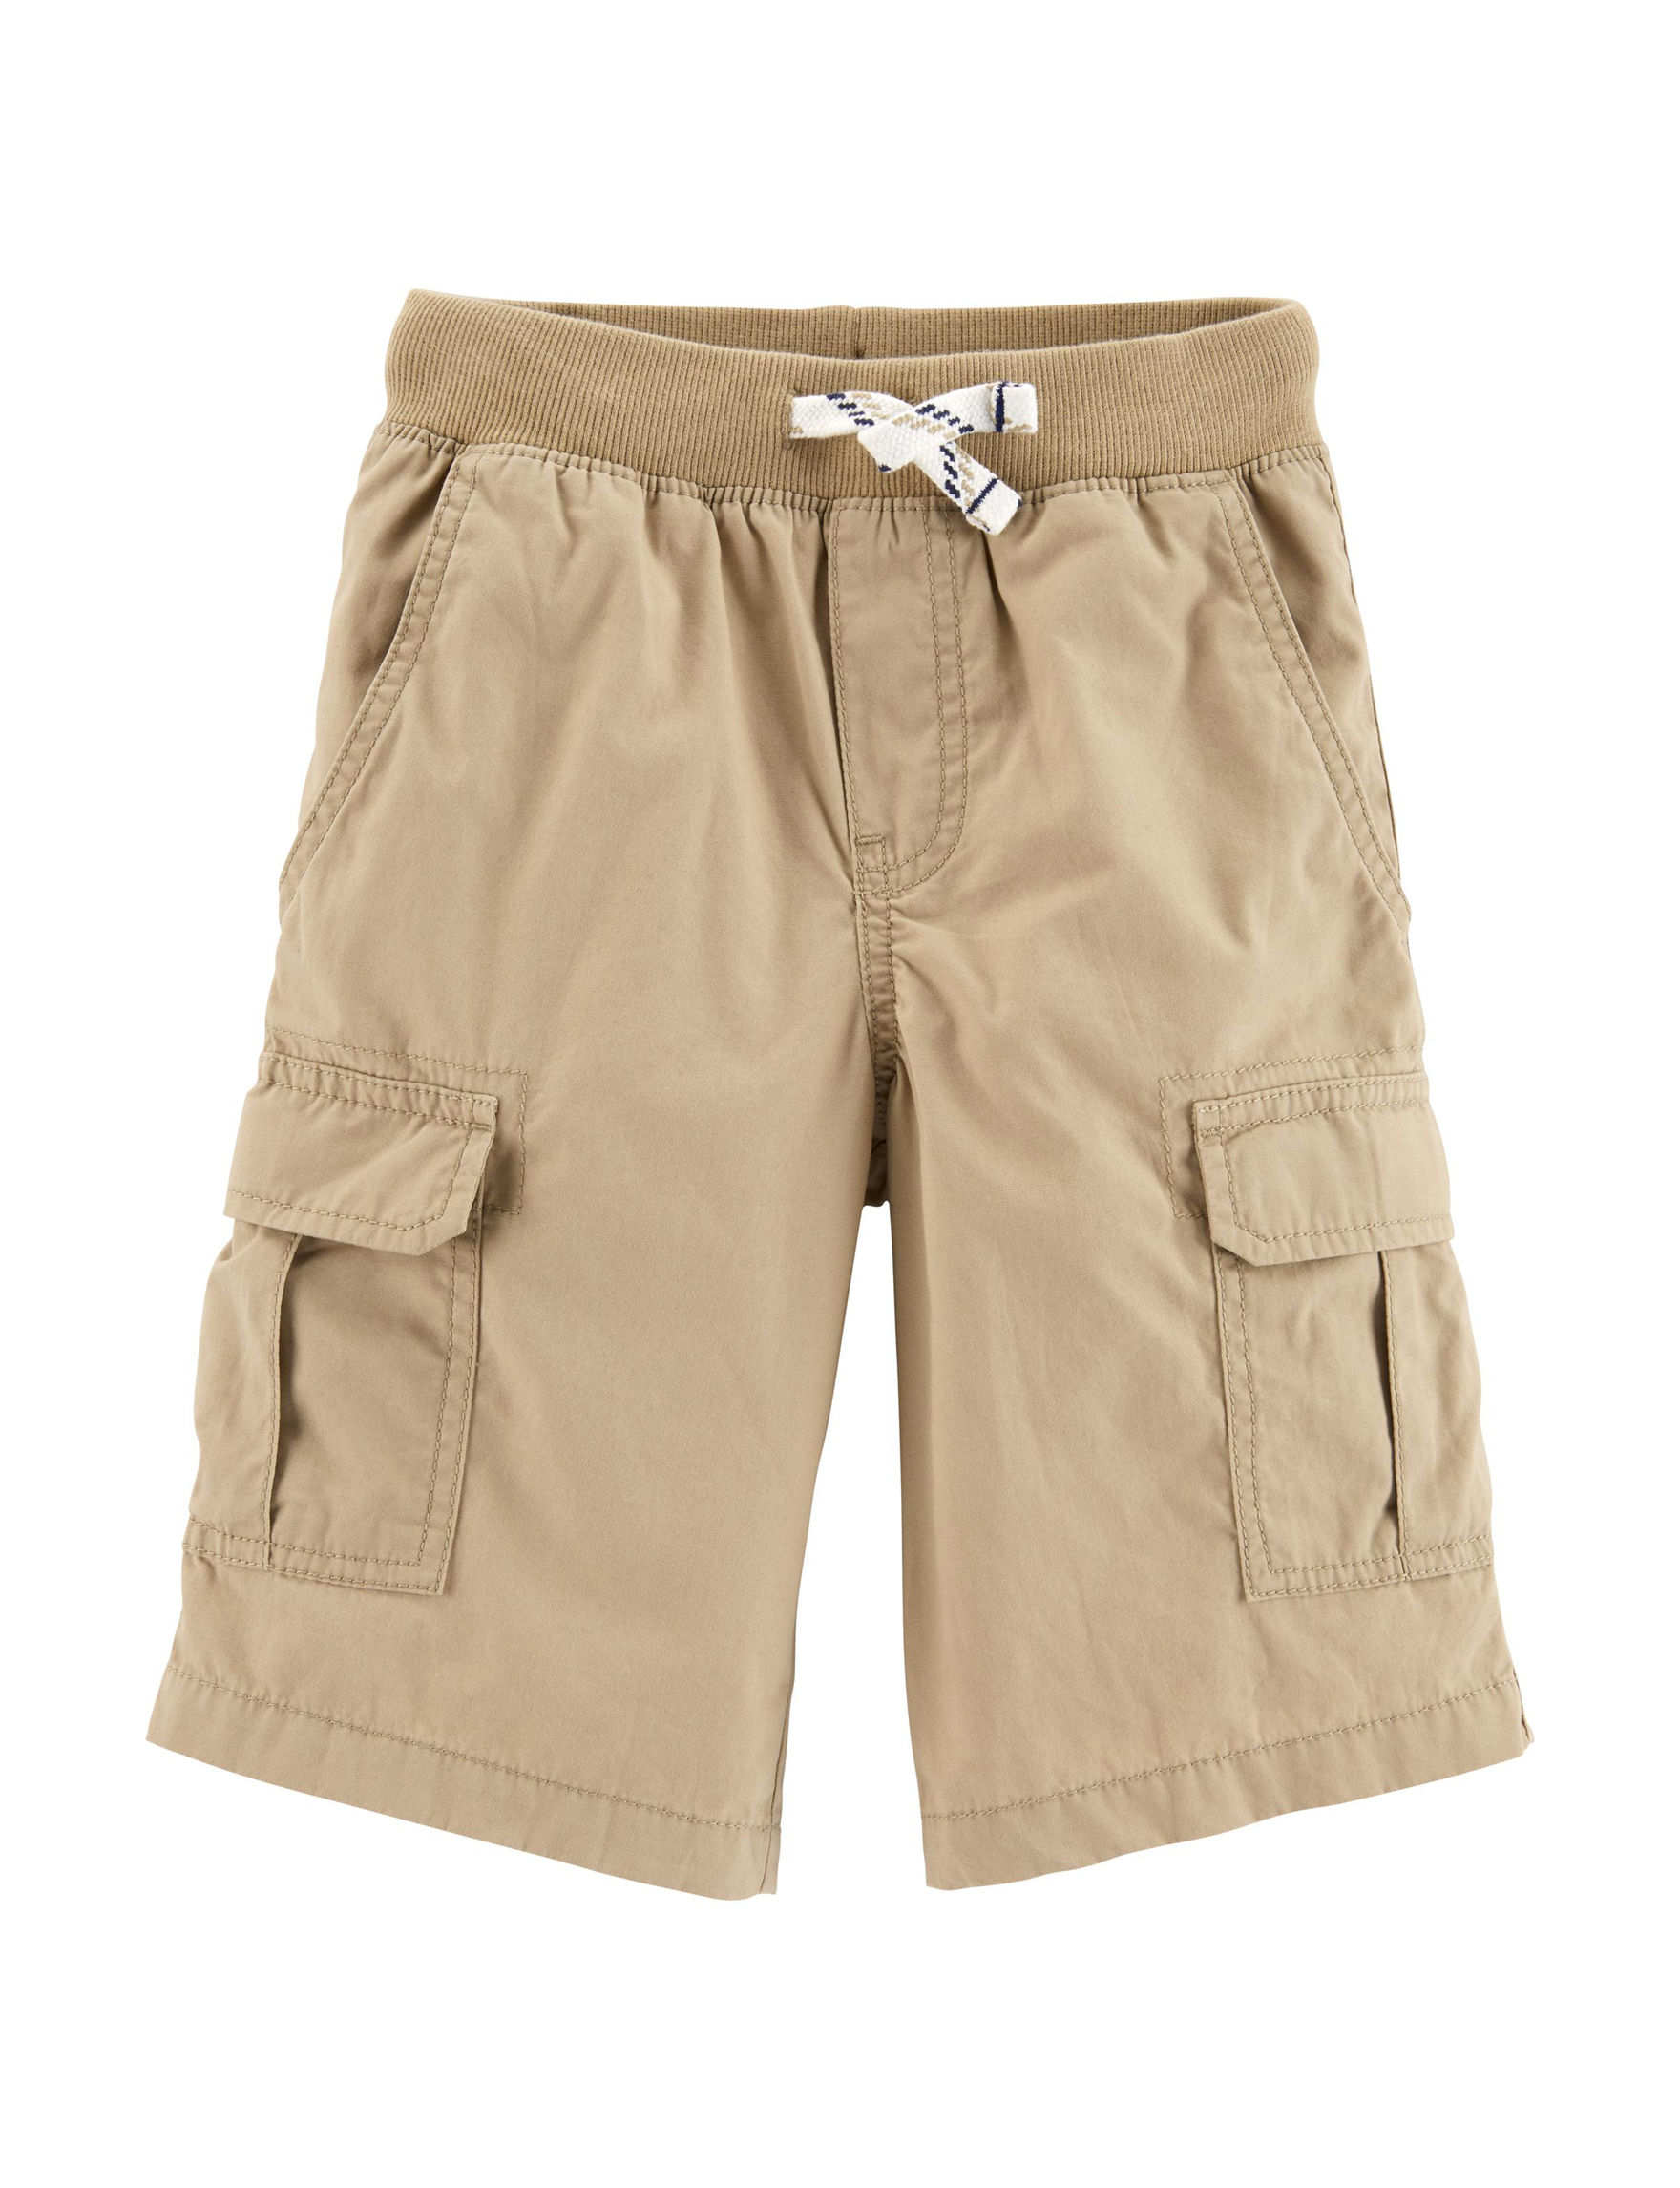 Carter's Medium Beige